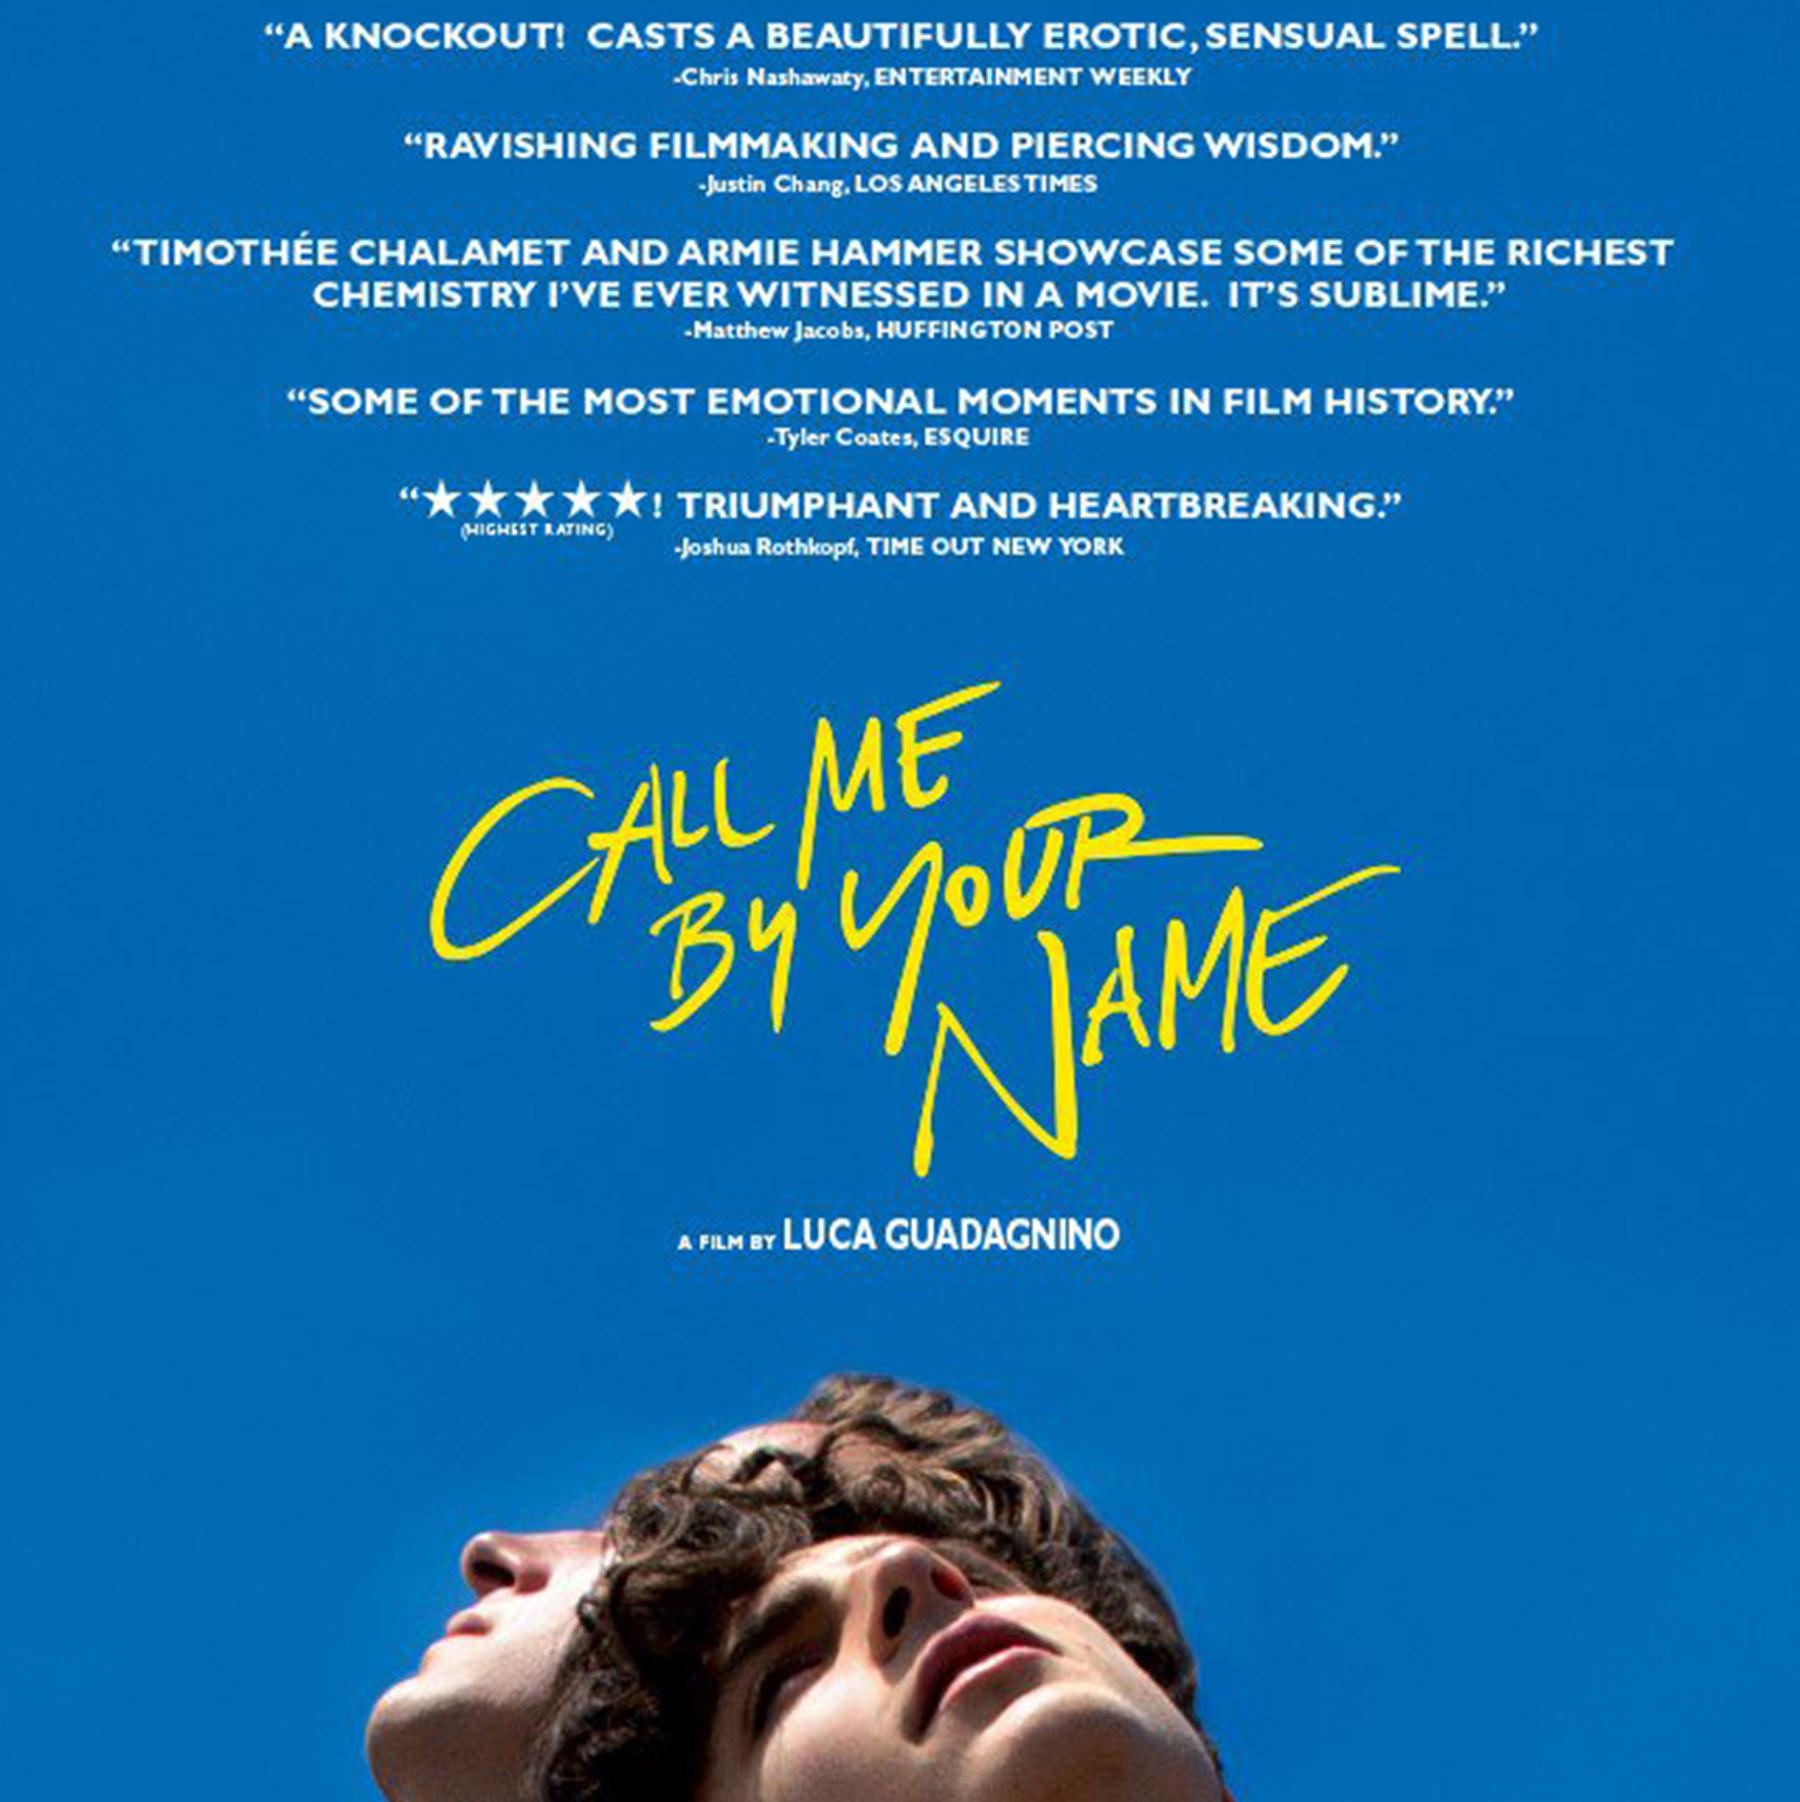 Friday 25th May – Call me by your name